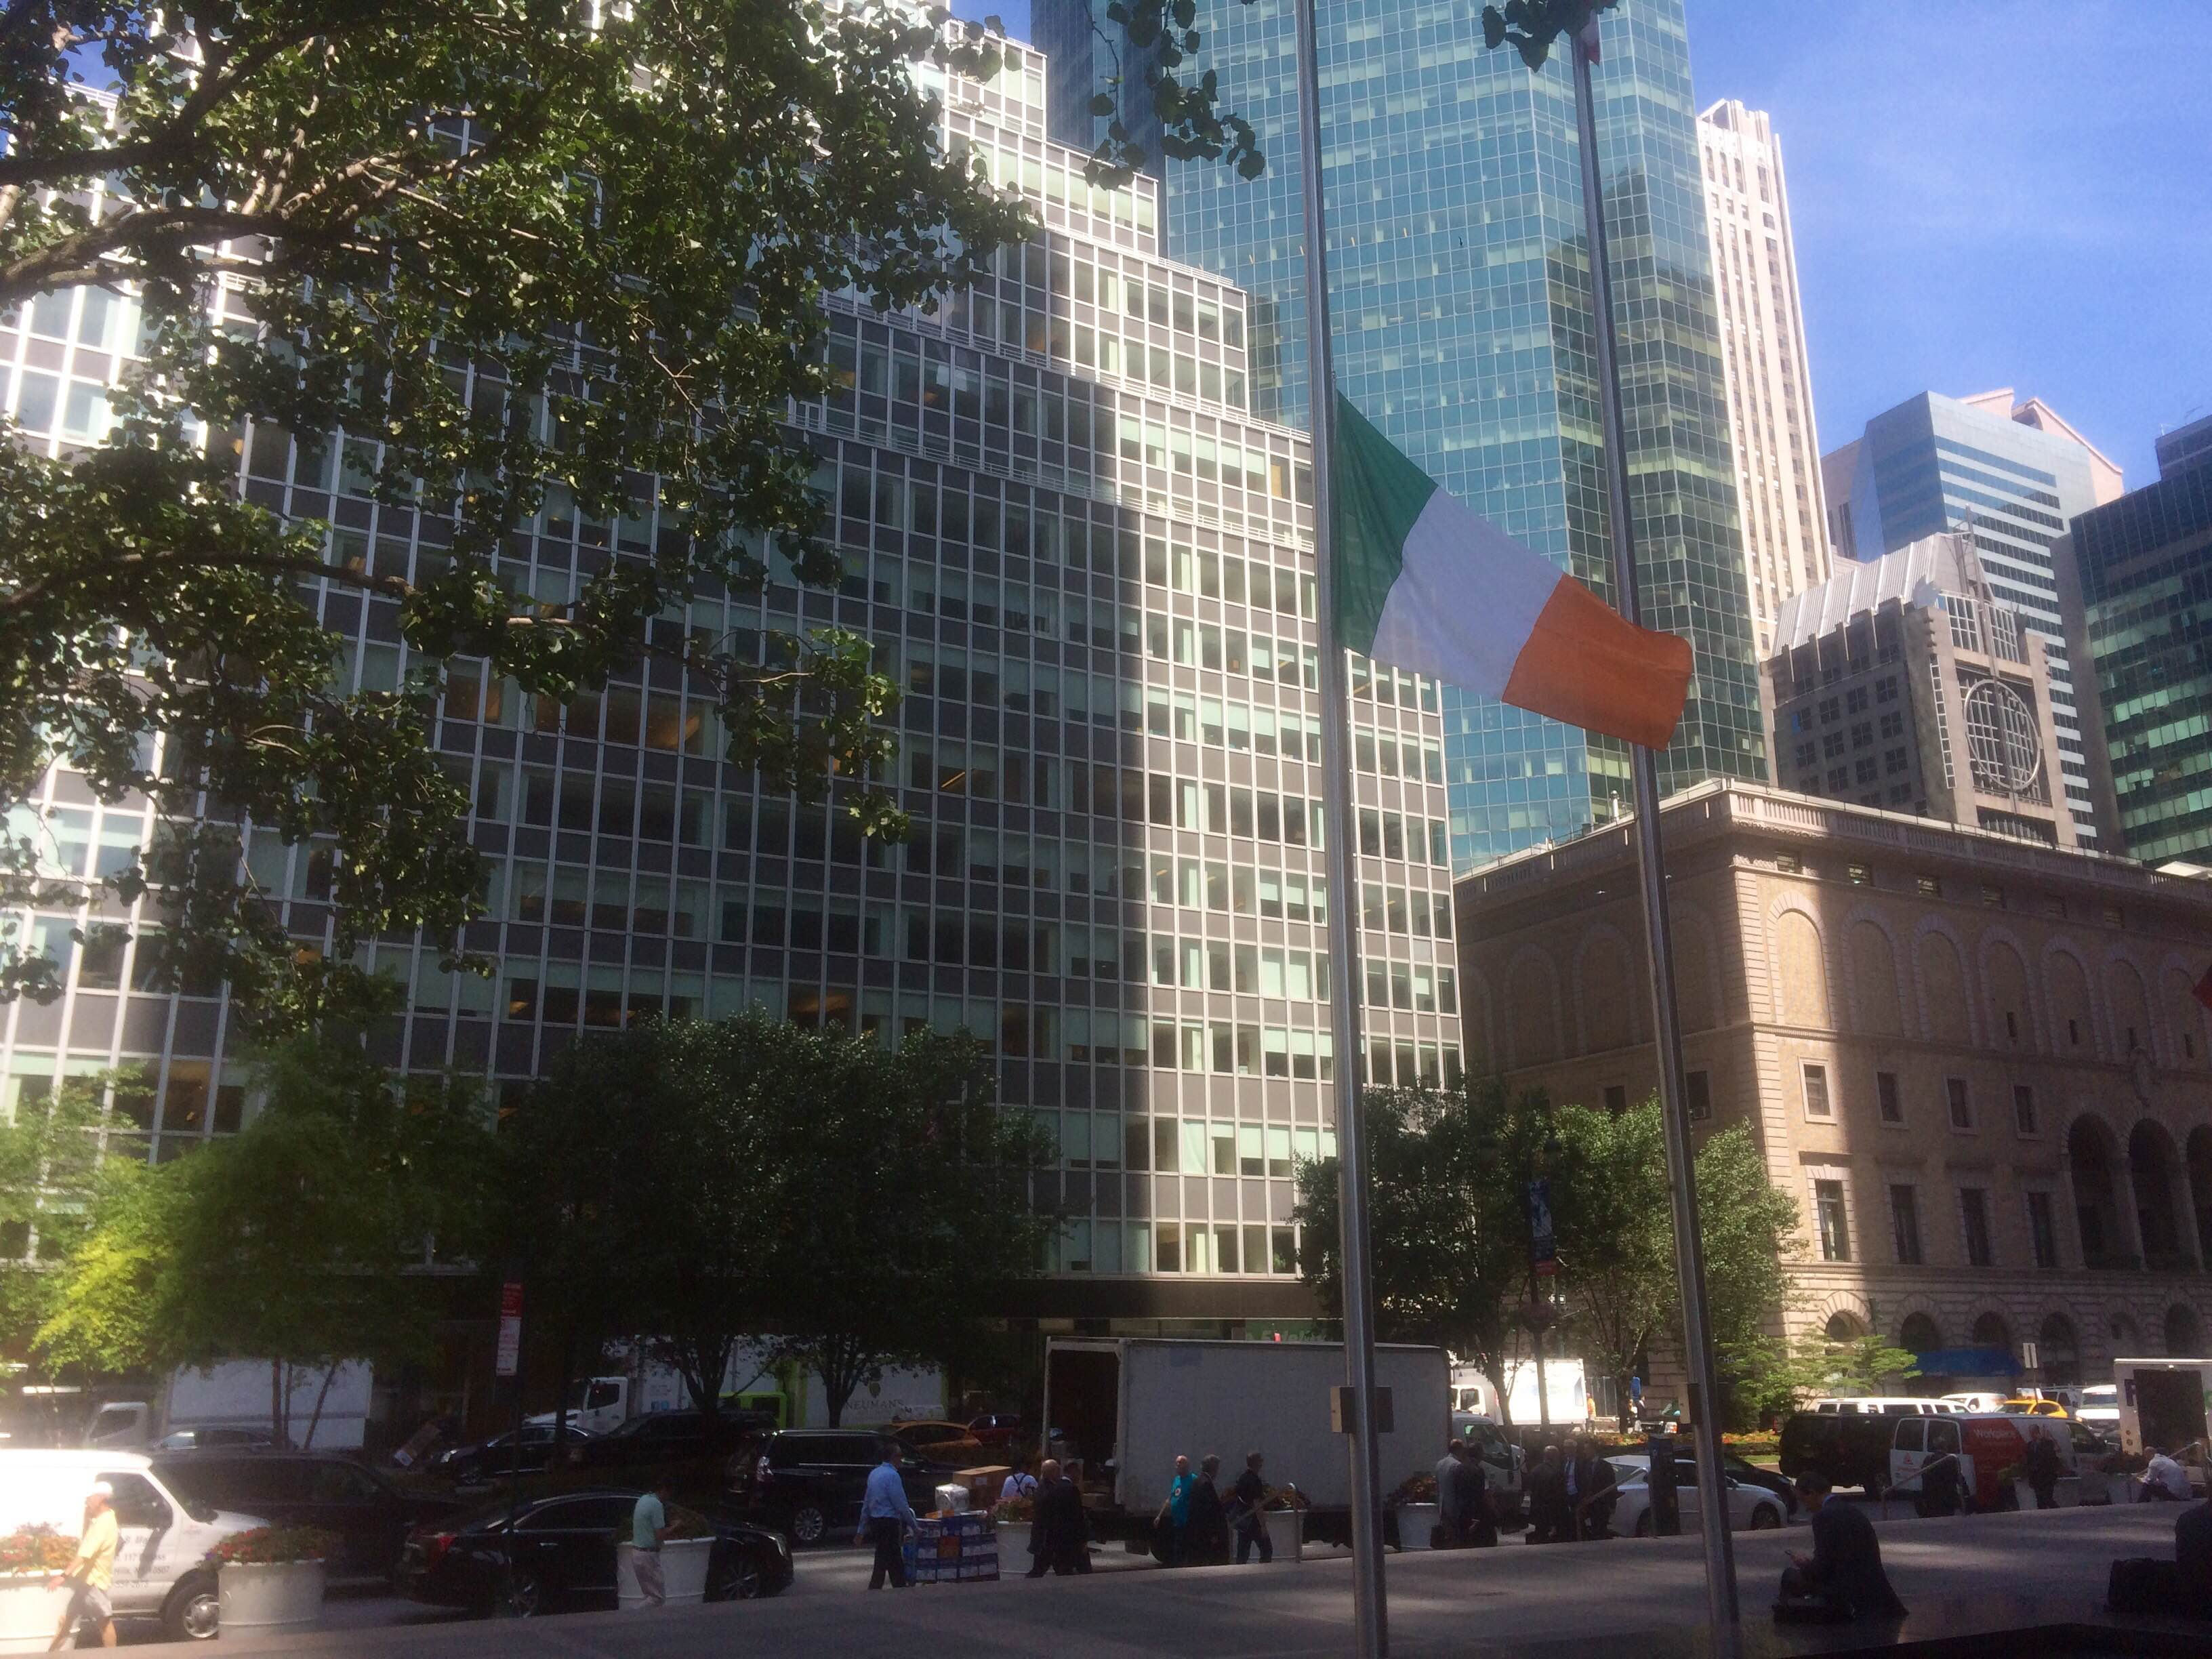 The Irish flag at half mast outside the Consul General of Ireland in New York City.